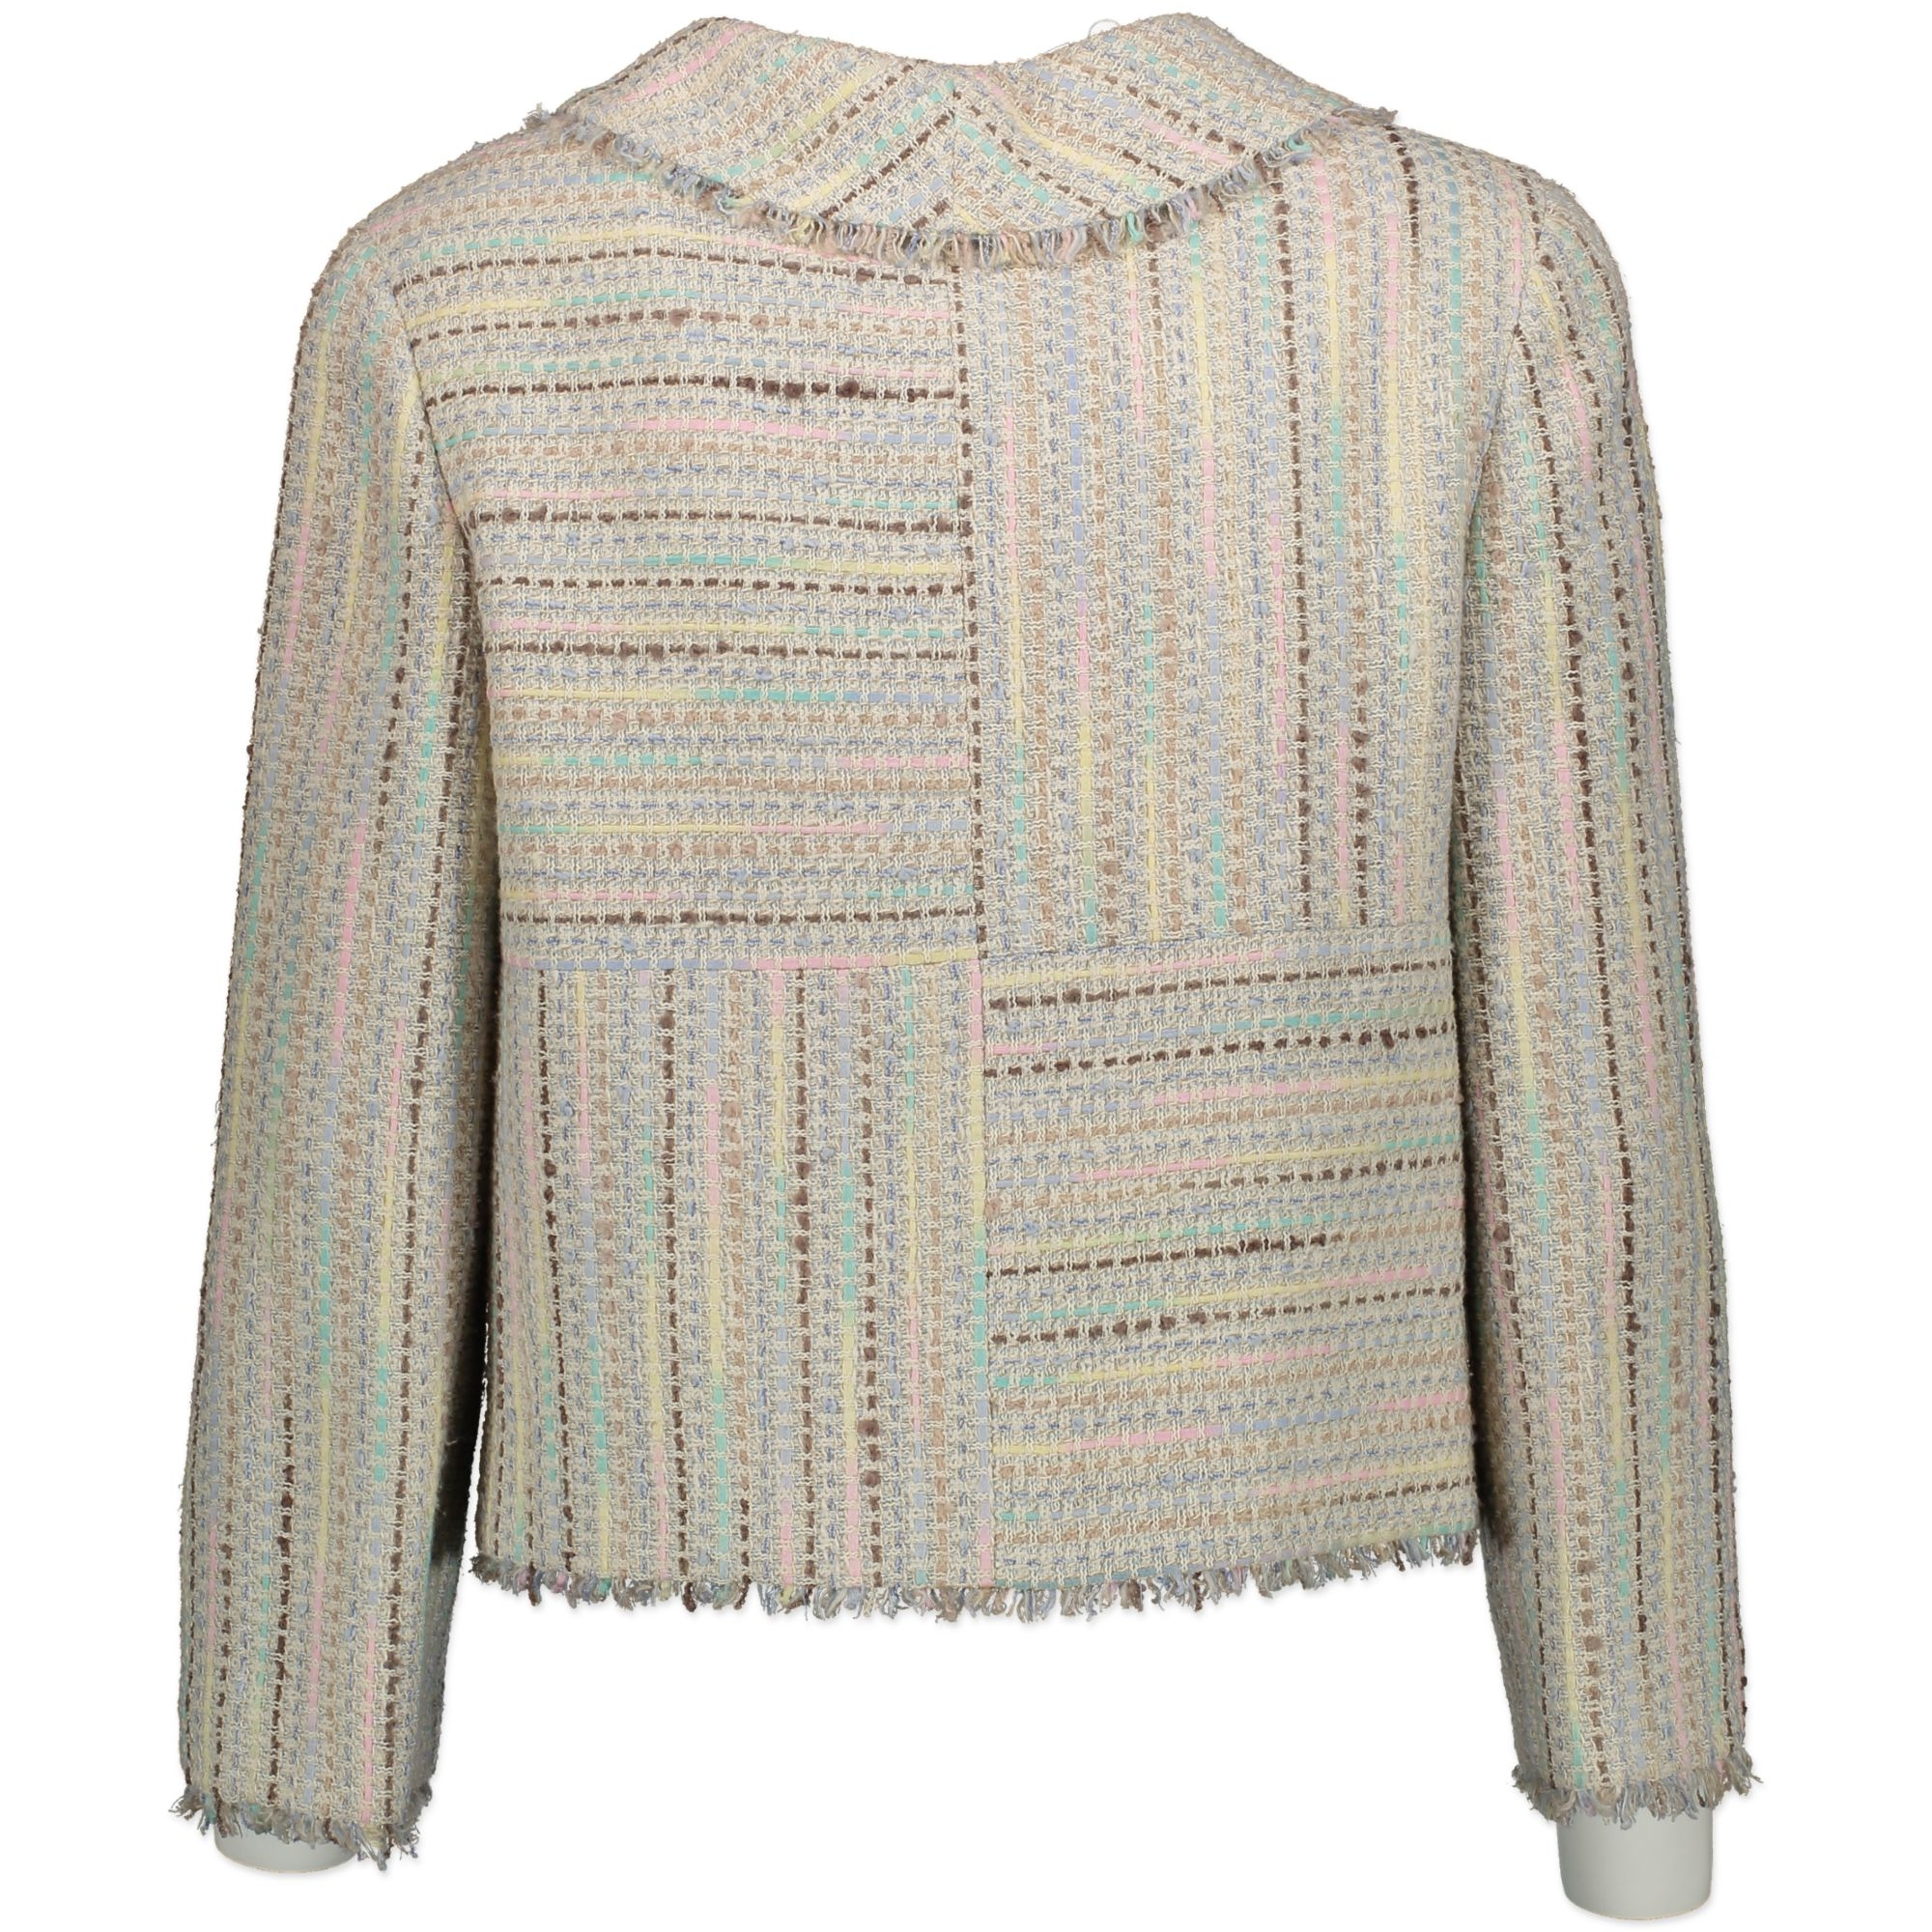 Chanel Tweed Pastel Jacket. Buy authentic secondhand at Labellov. Koop authentieke tweedehands Chanel bij Labellov.